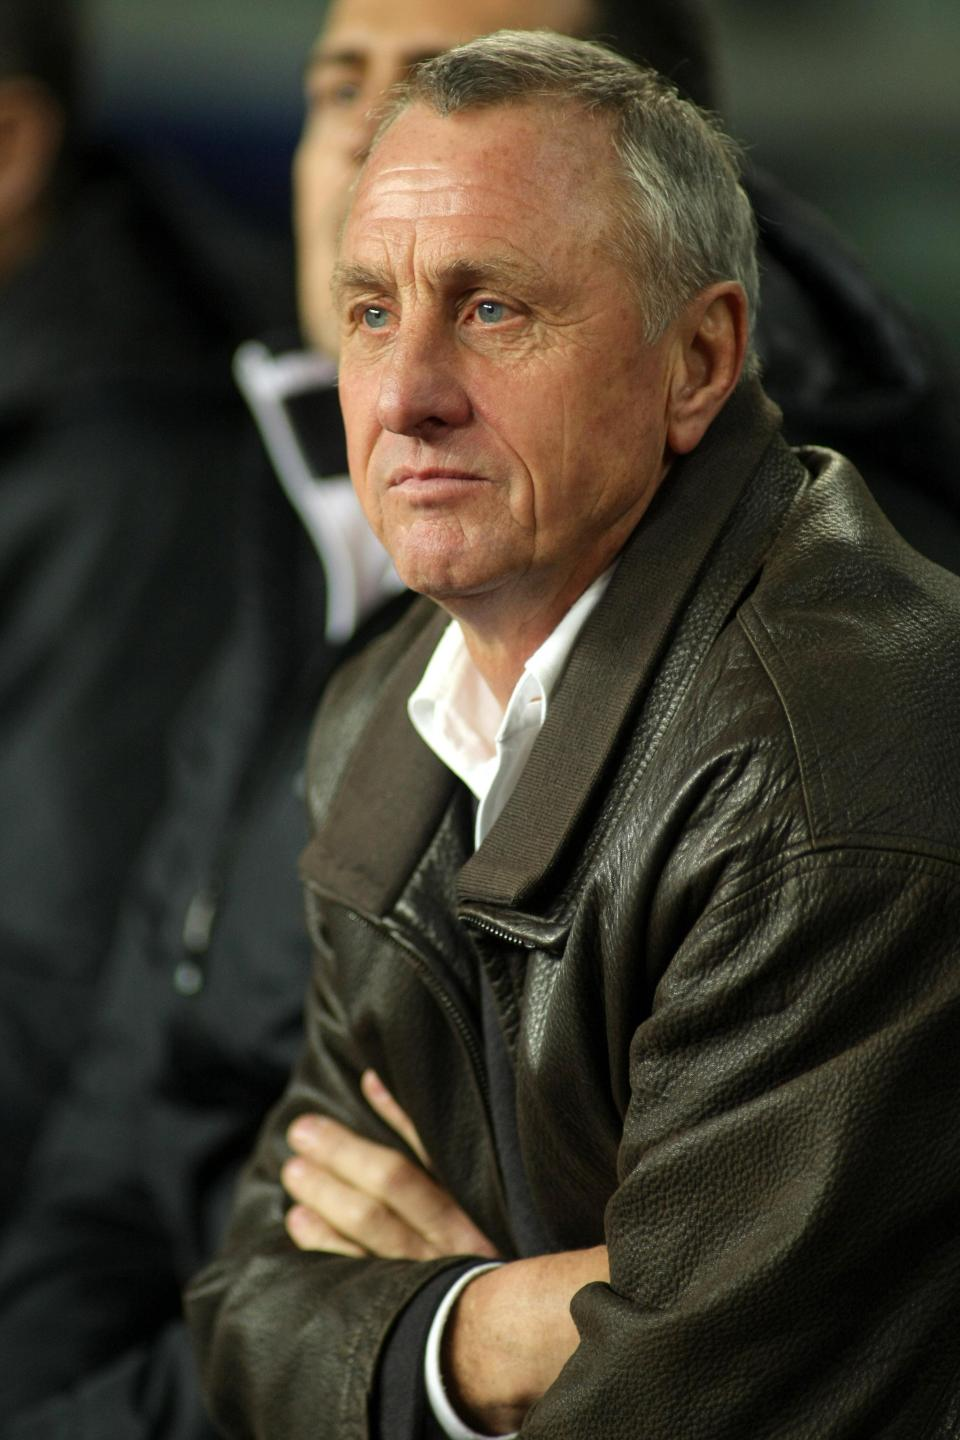 Catalonia coach Johan Cruyff on the bench during the friendly match between Catalonia vs Argentina at Camp Nou Stadium on December 22, 2009 in Barcelona. Photo: Shutterstock.com